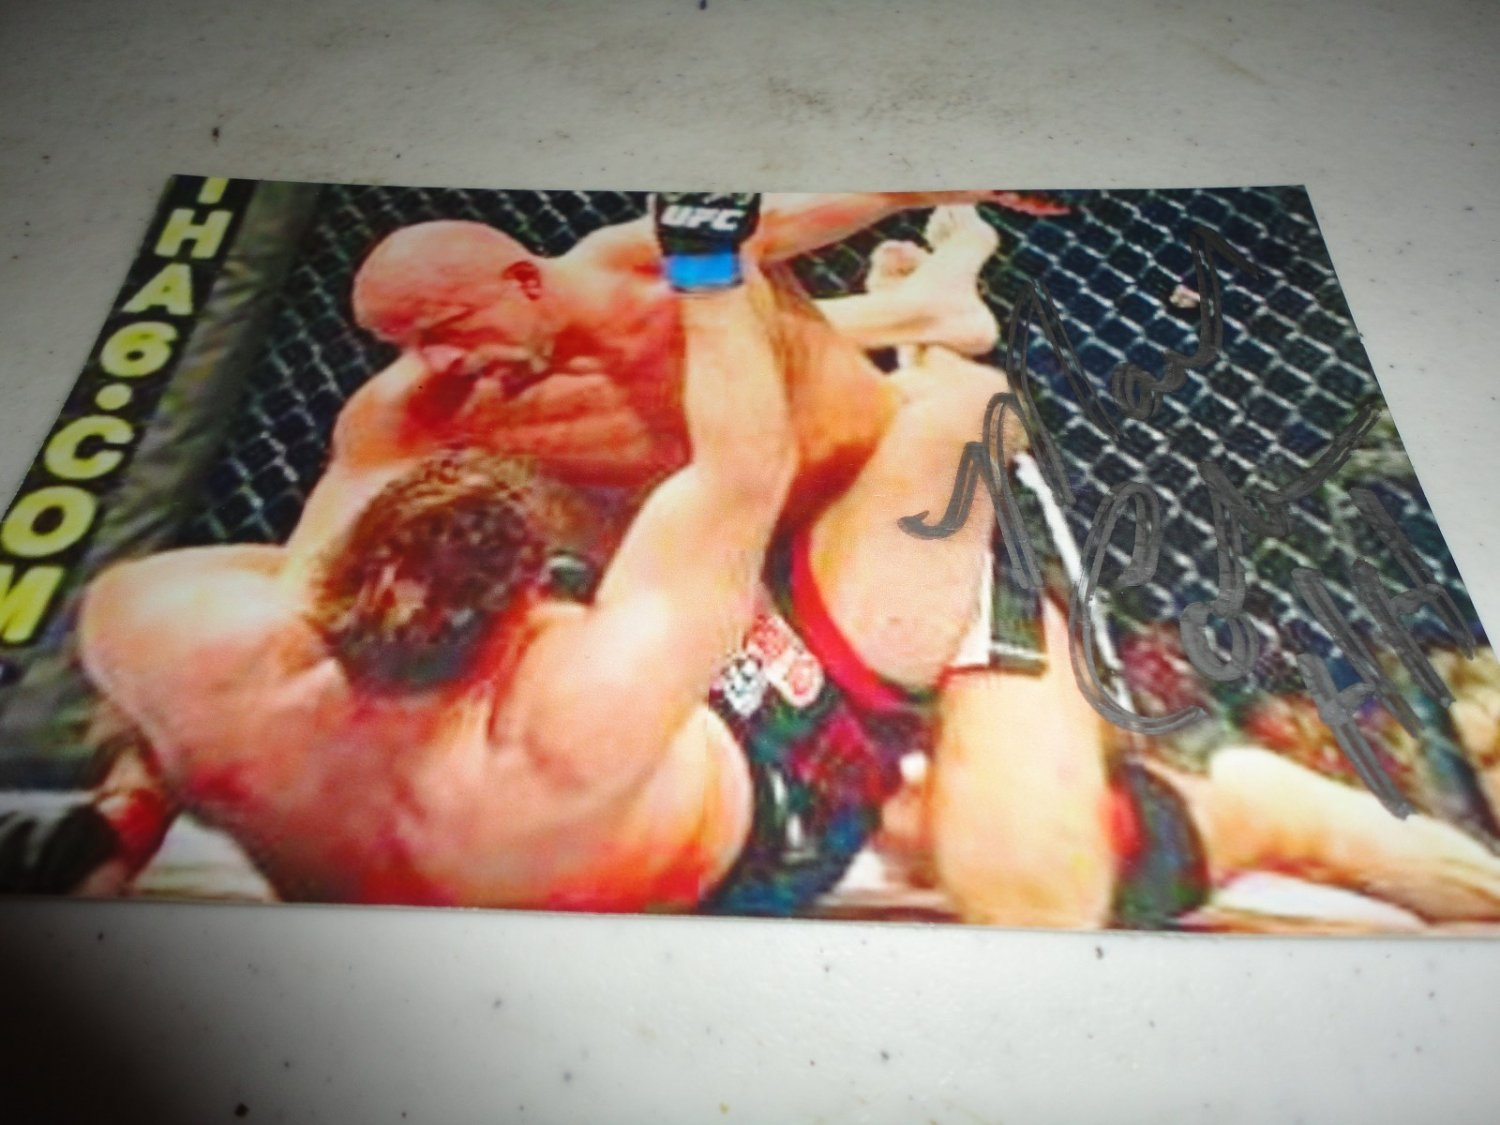 UFC Hall of Famer MARK COLEMAN autographed signed 4x6 photo MMA